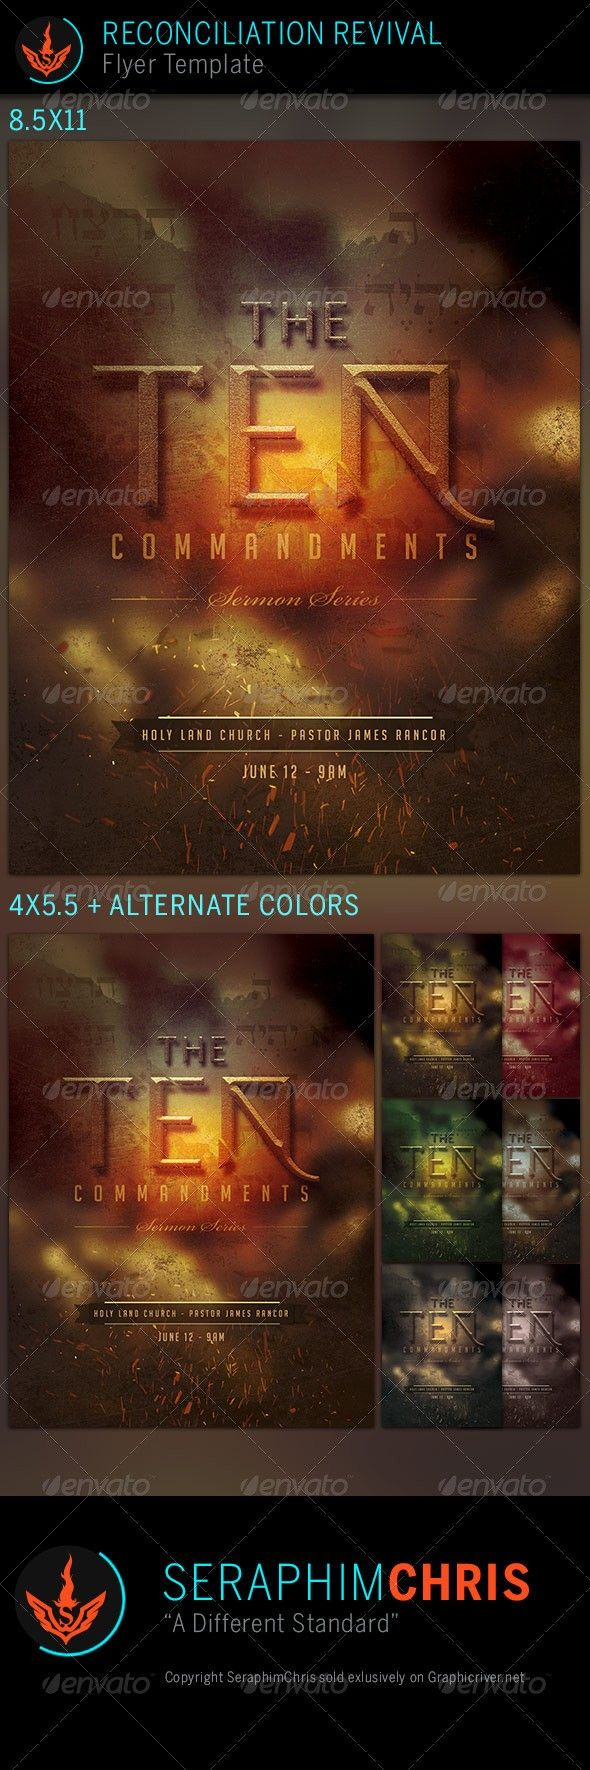 the 10 commandments series church flyer template flyers templates